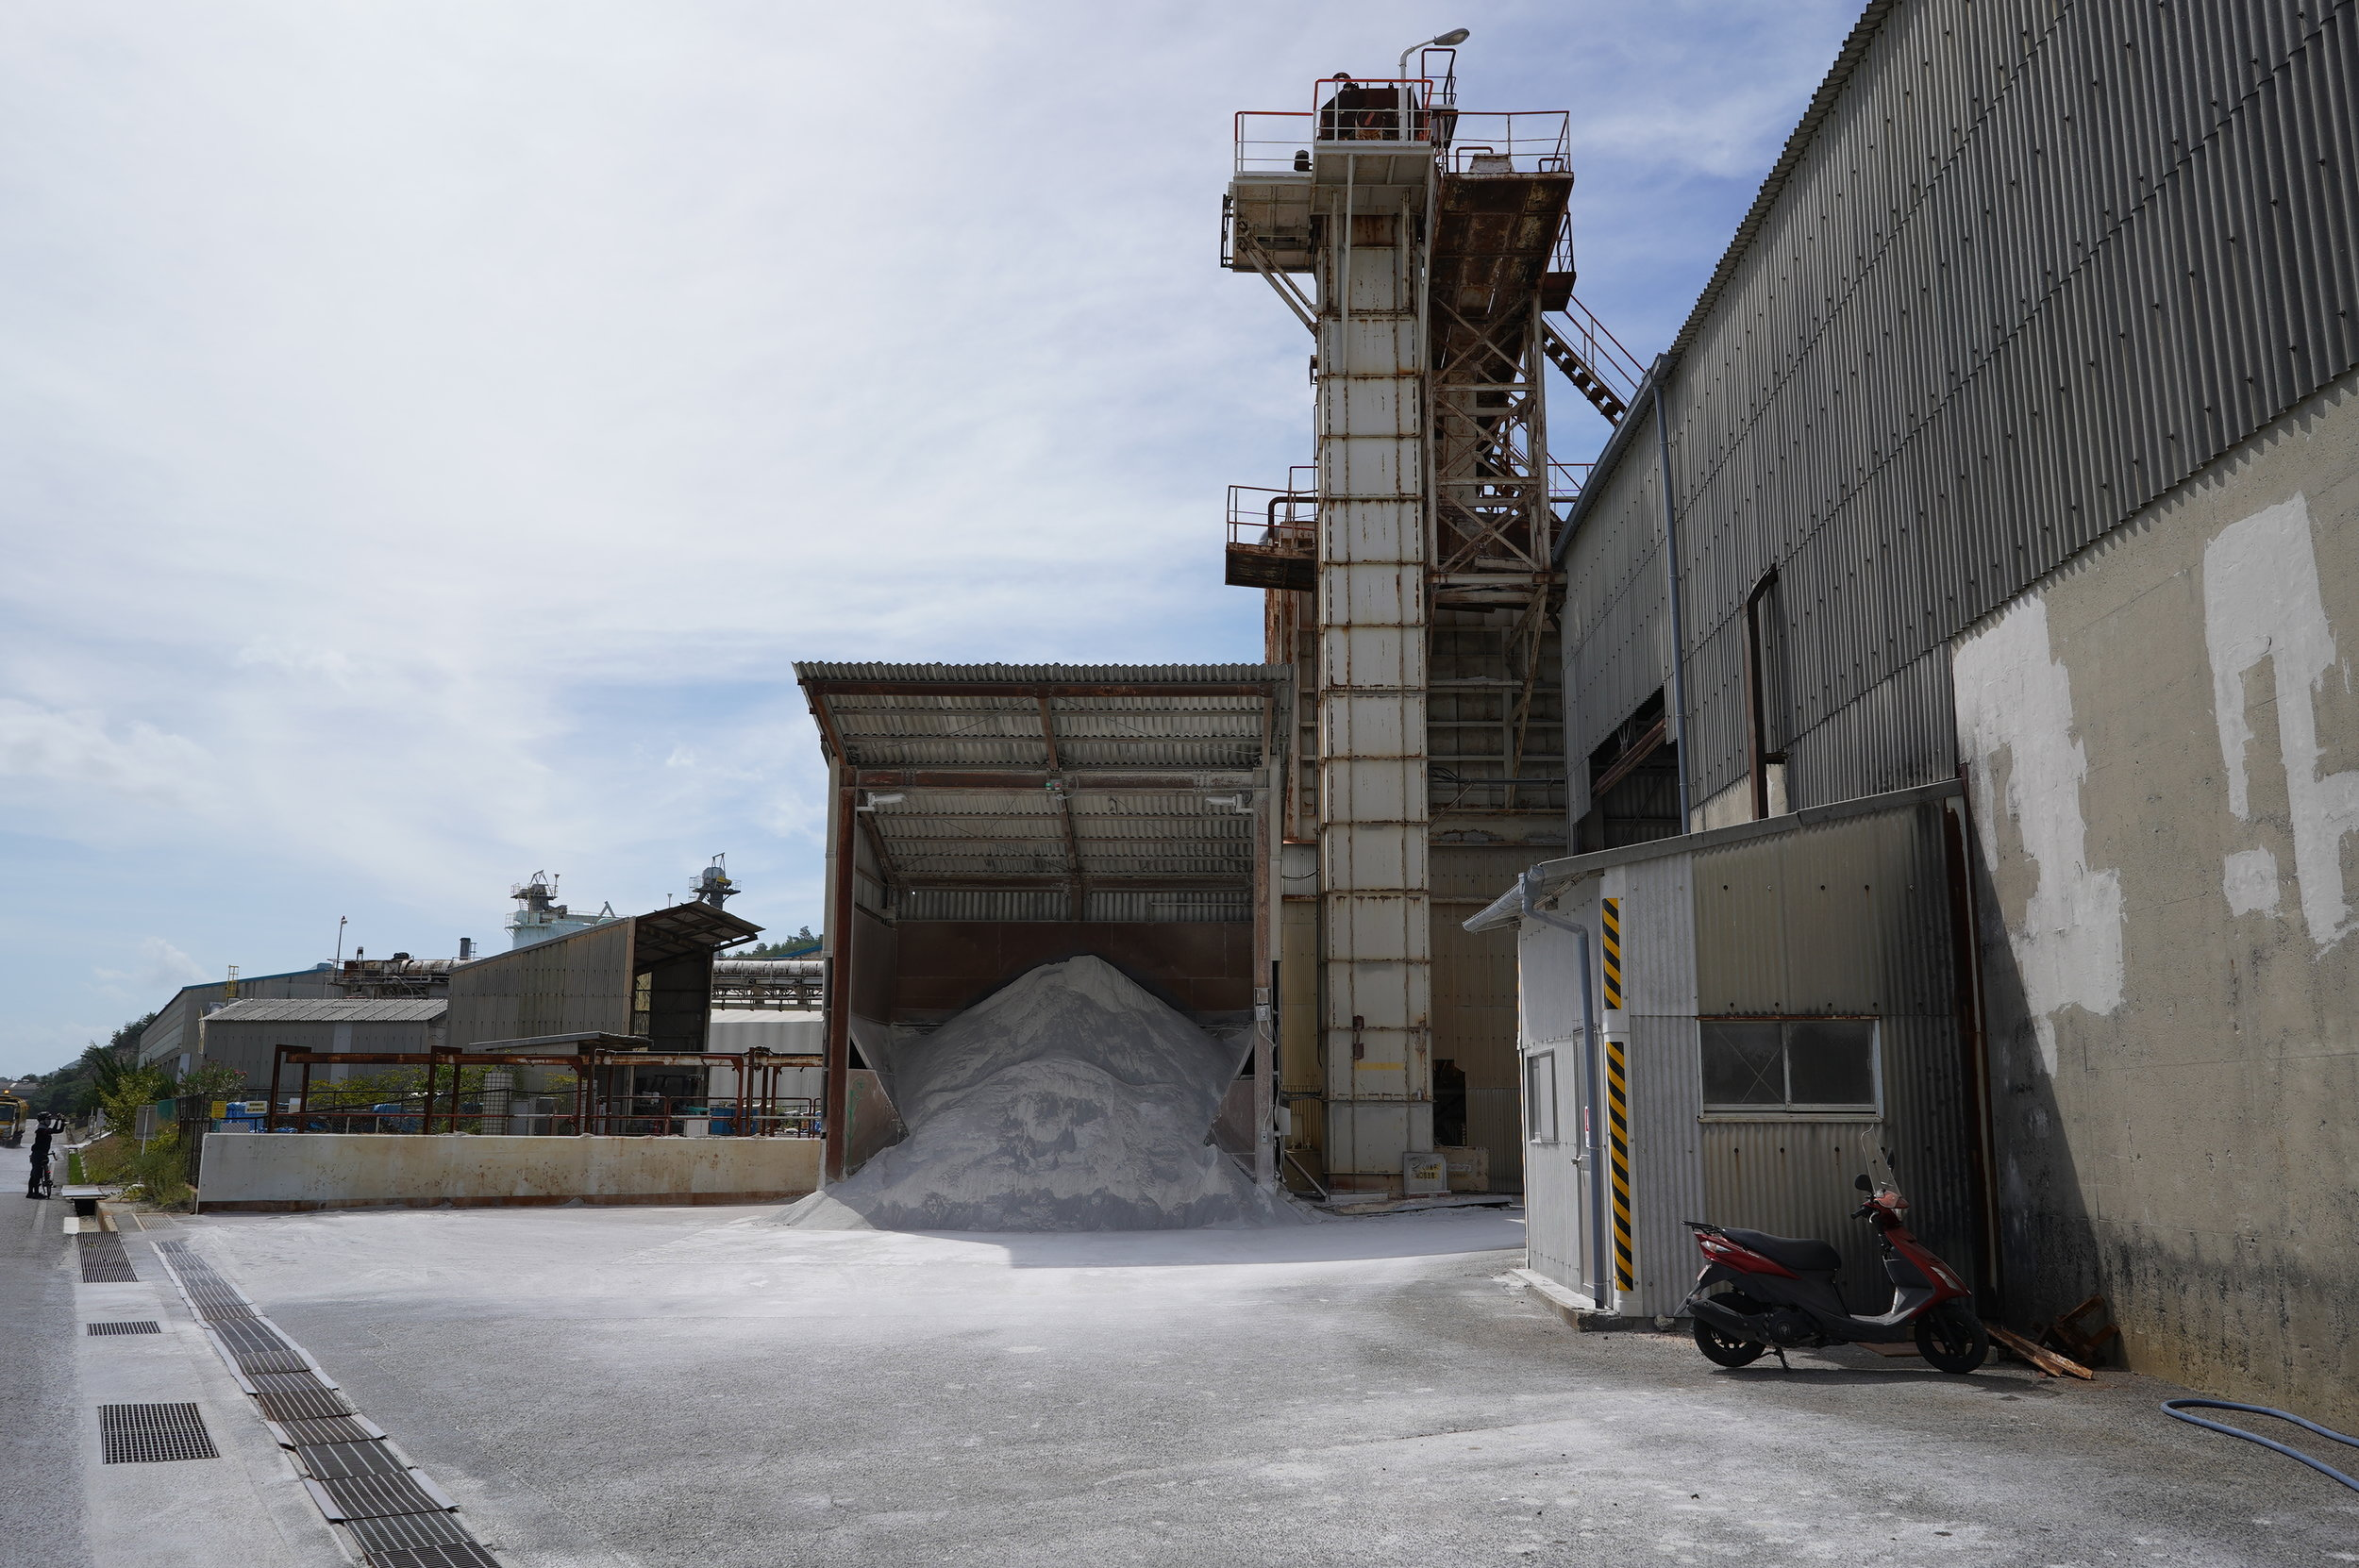 A gypsum facility on the northern end of the island.